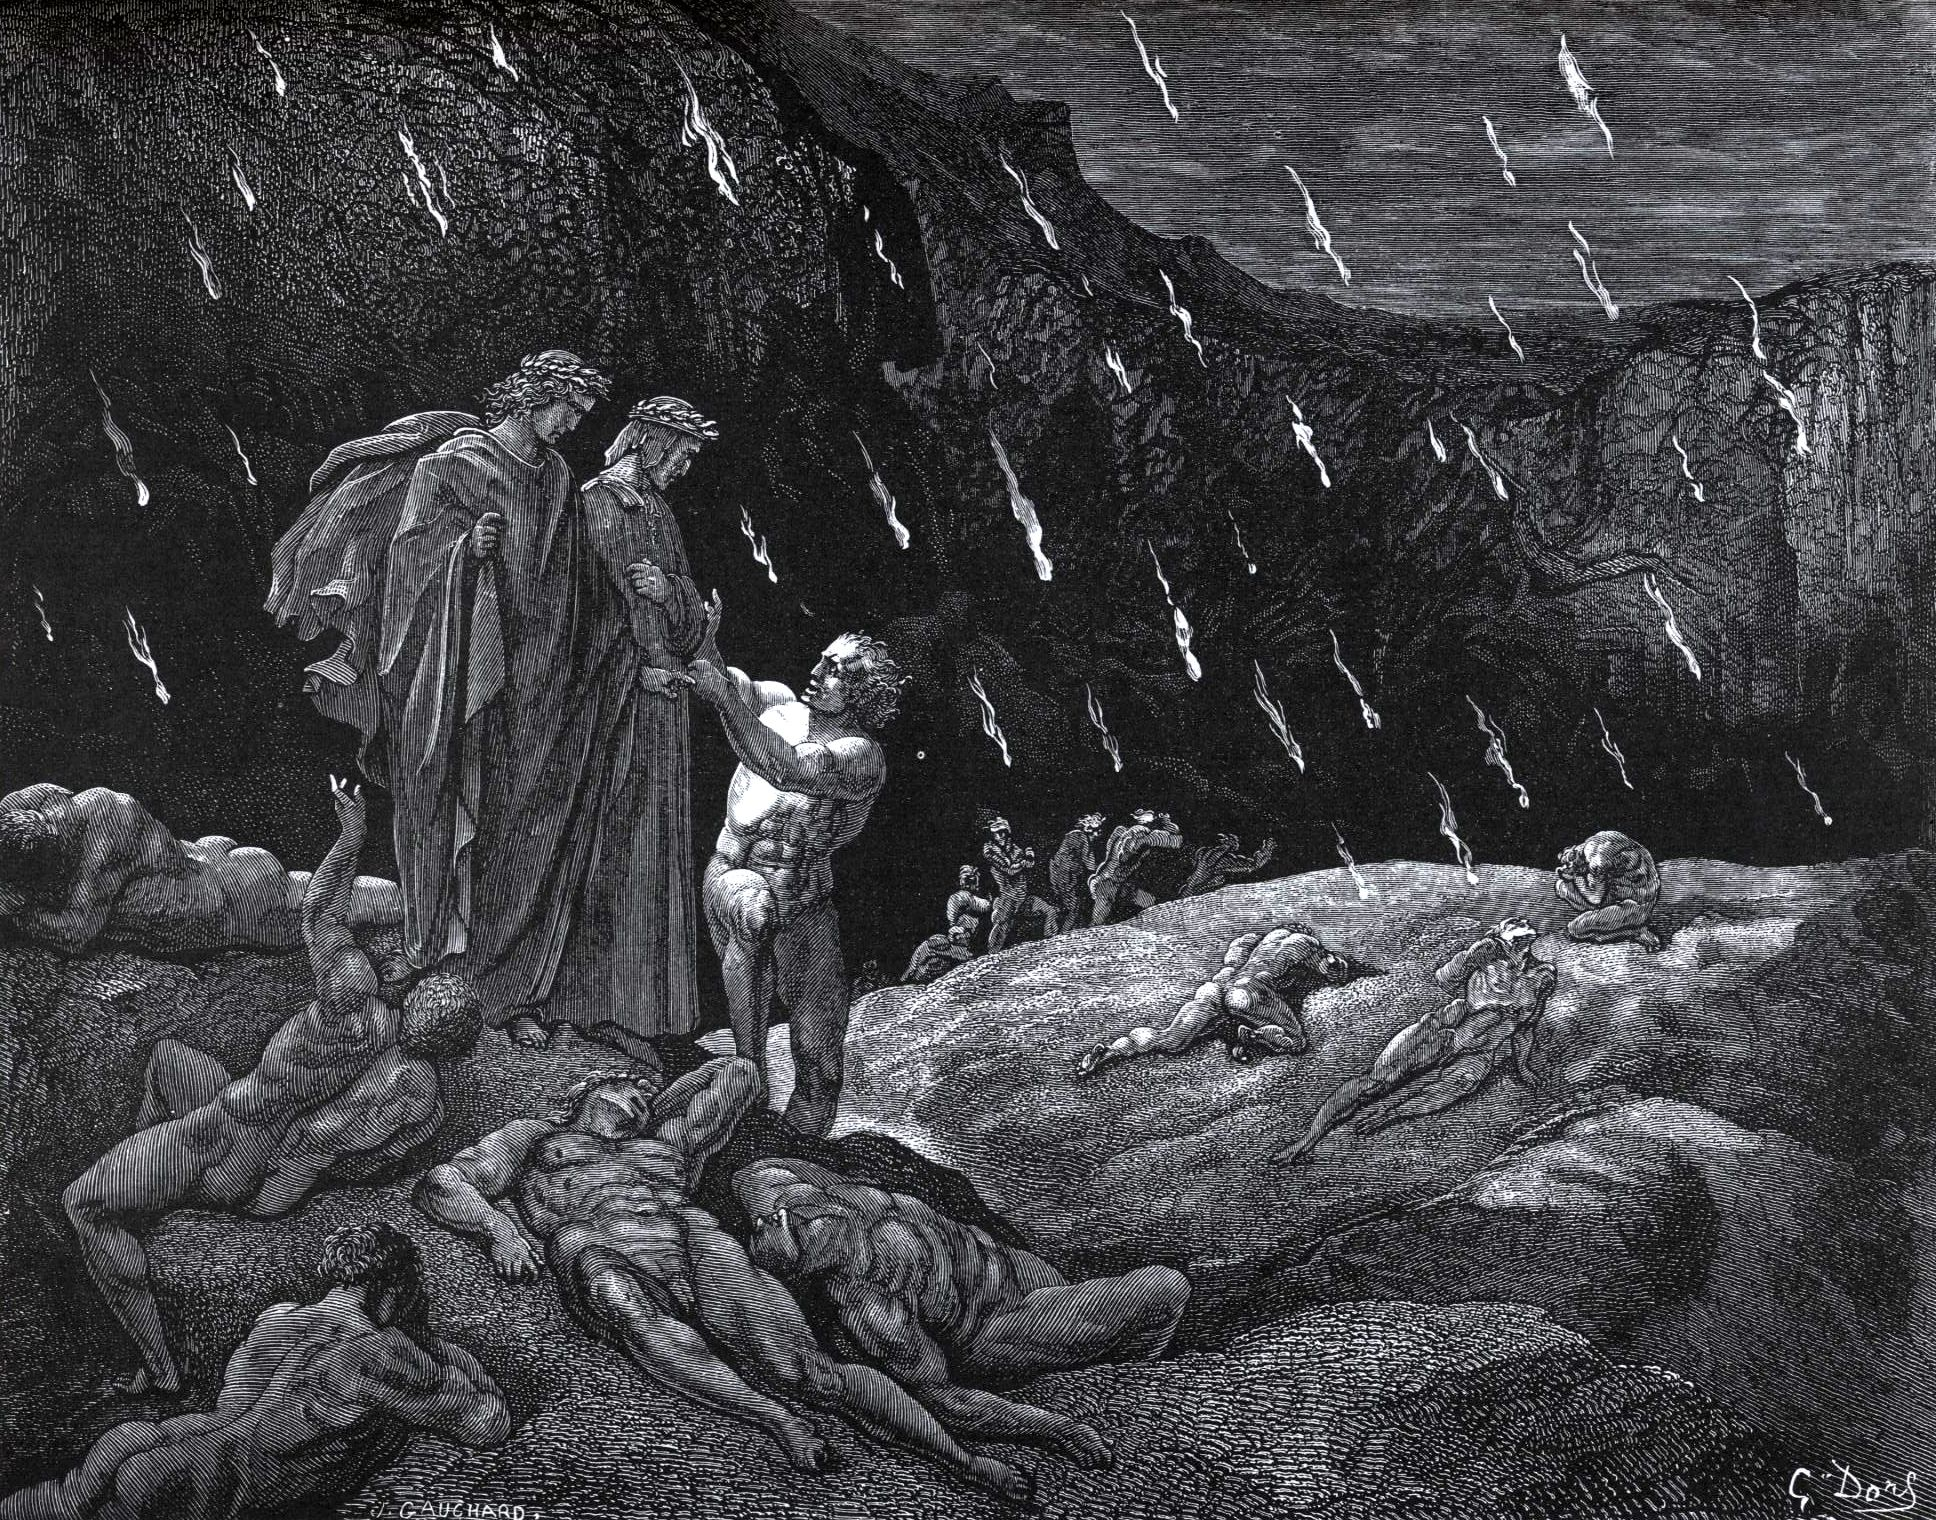 Any writings on Hell that are contemporary with Dante's Inferno?